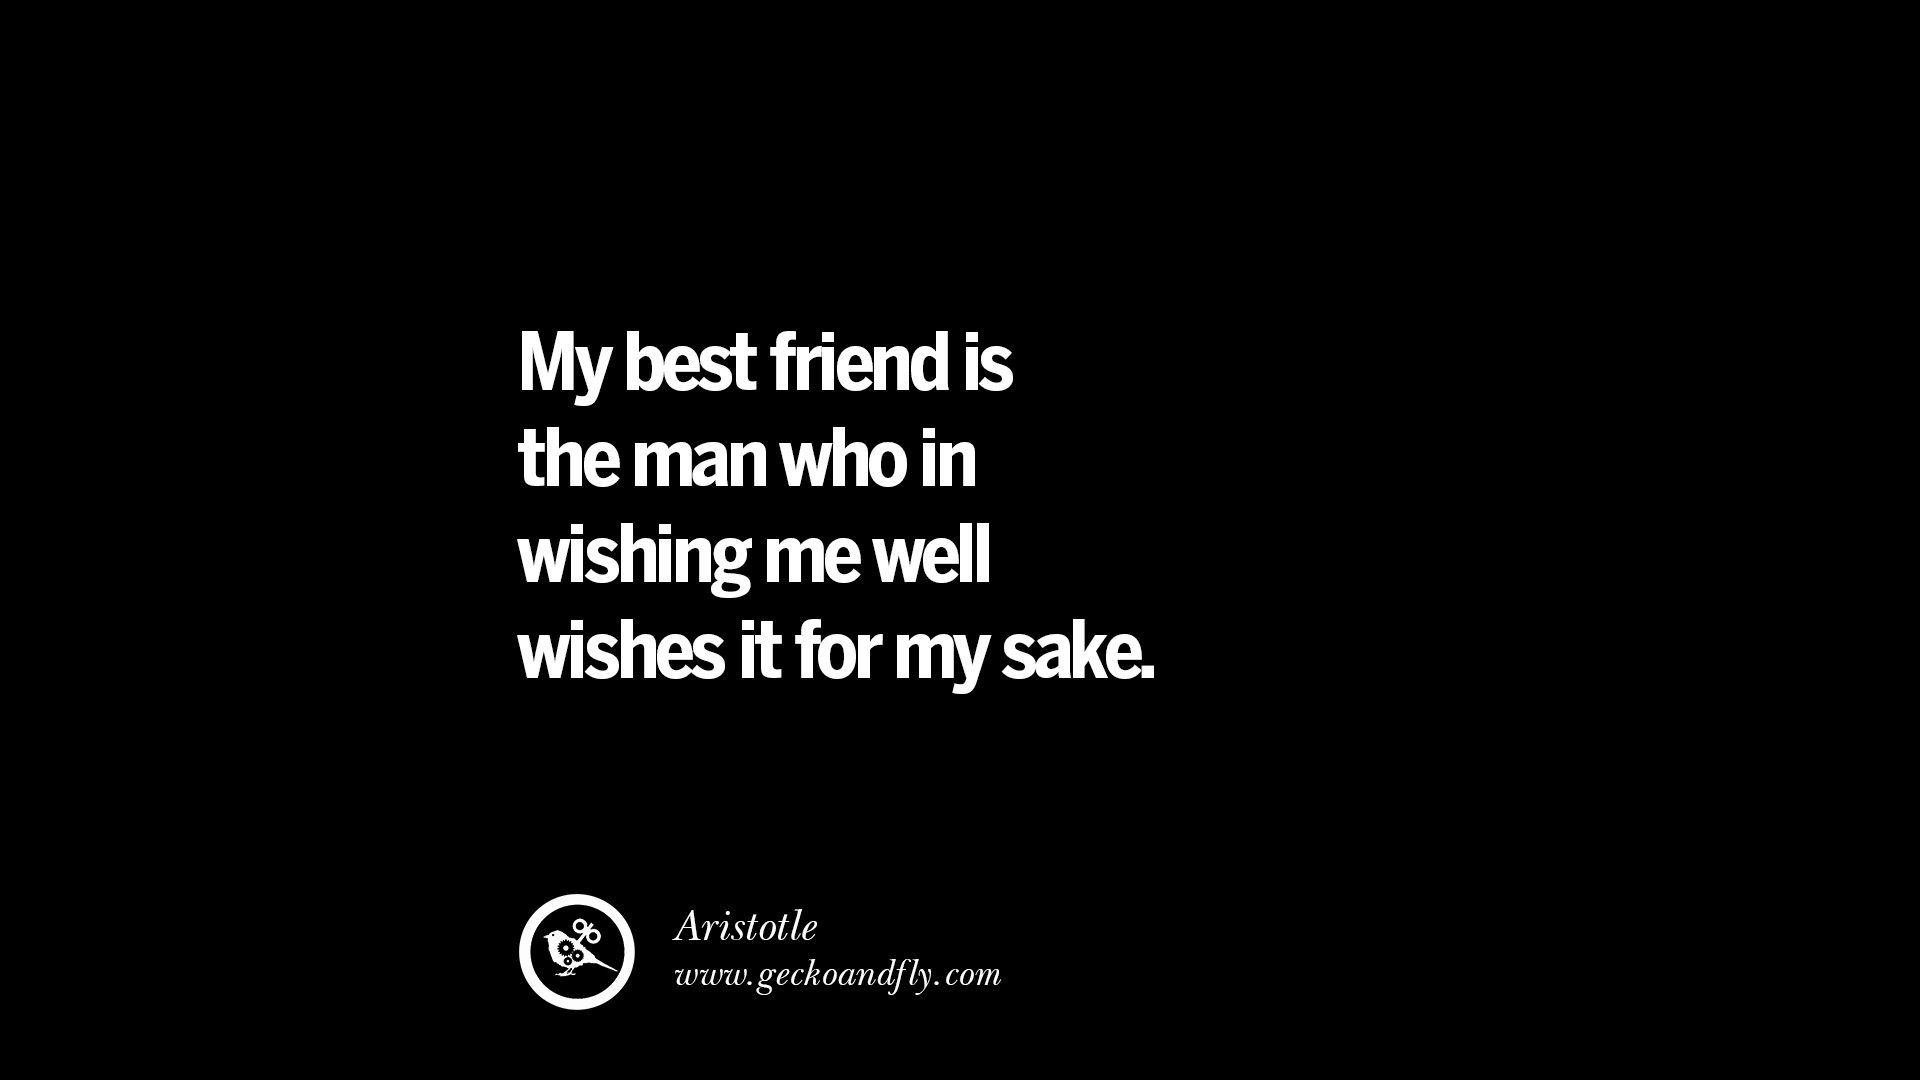 Friendship Is About Quotes 20 Amazing Quotes About Friendship Love And Friends  Geckoandfly 2018